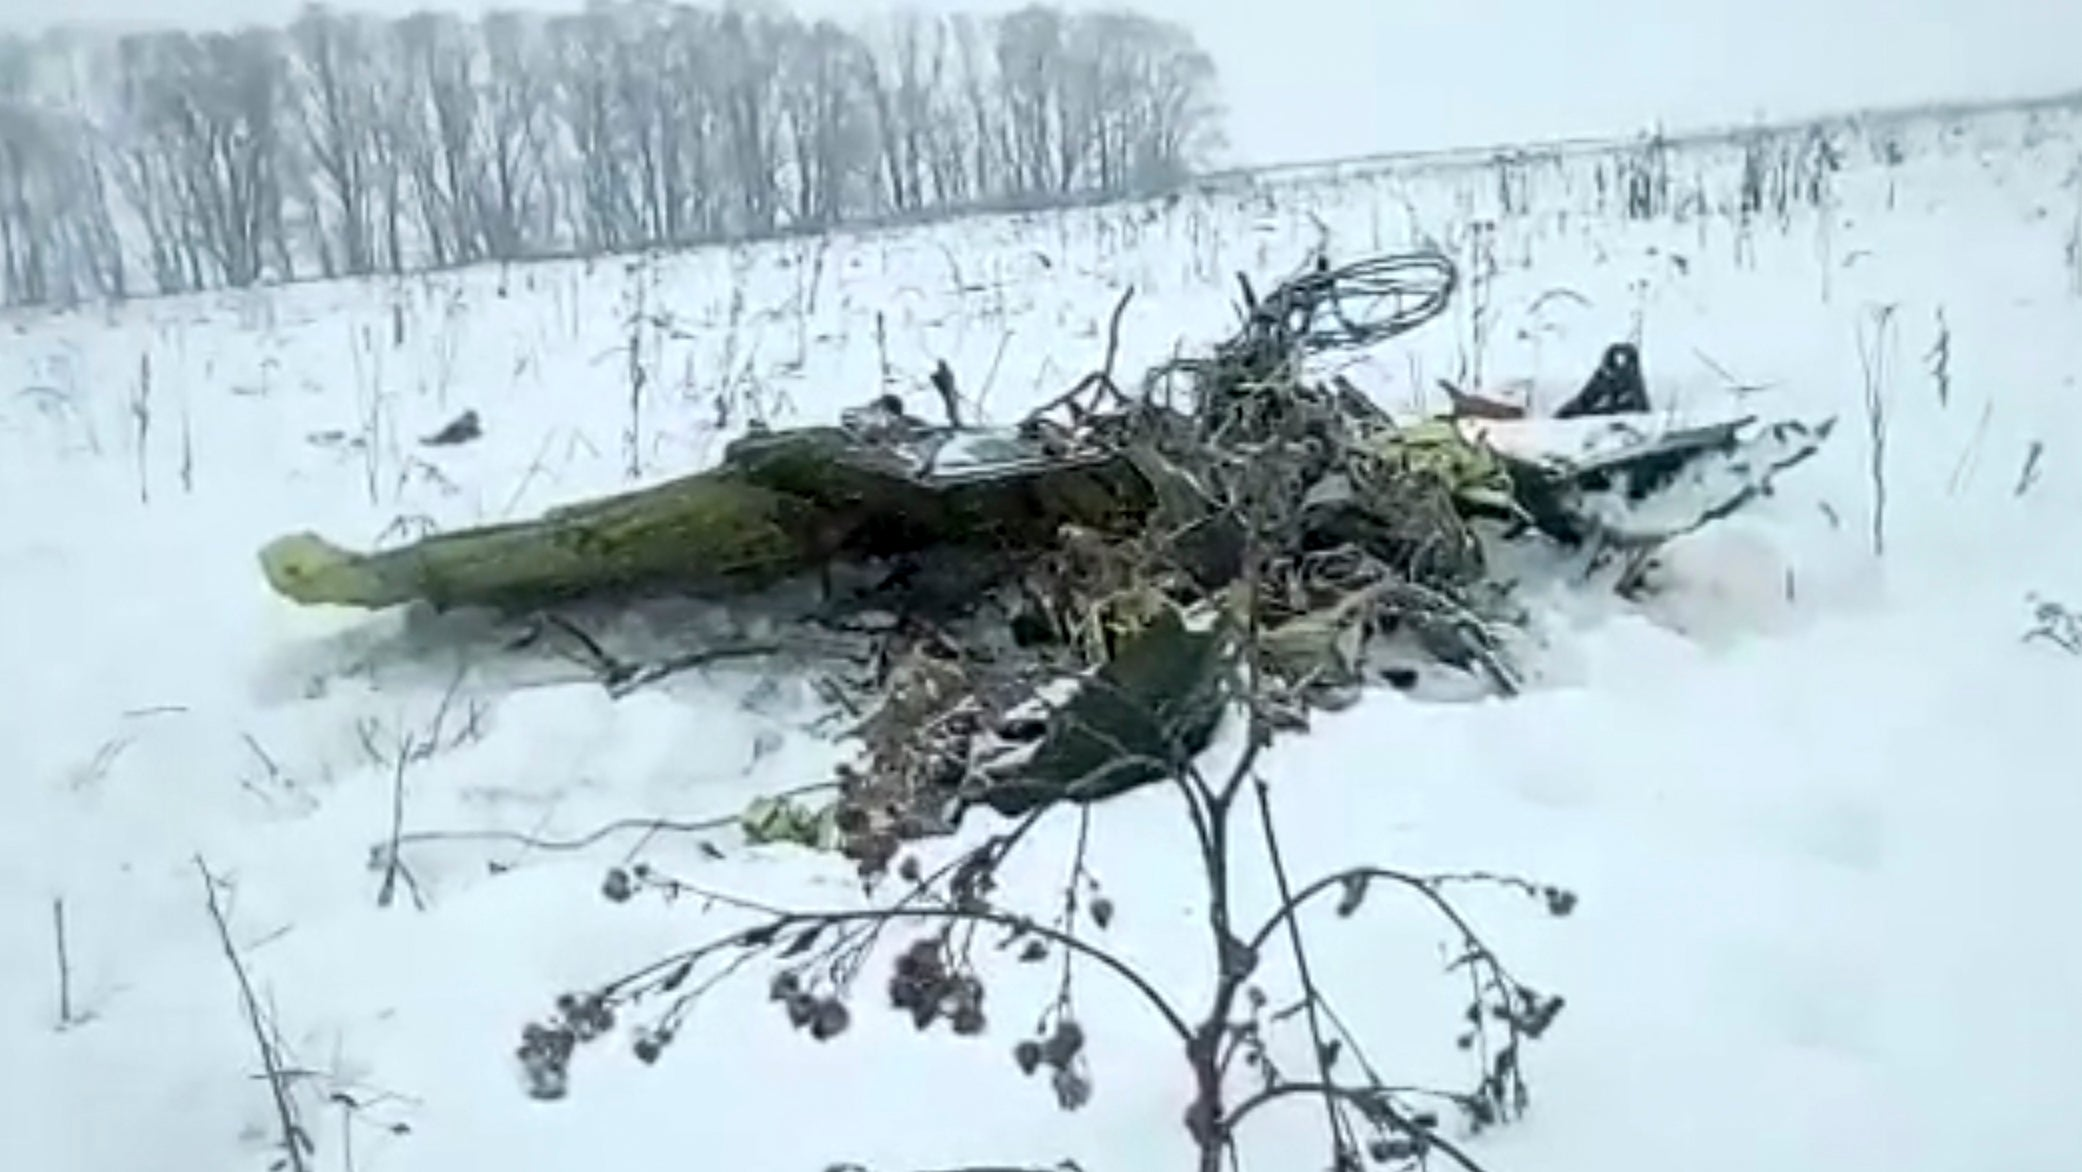 Russian An-148 Jet Crashes After Takeoff From Moscow, Killing At Least 71 People